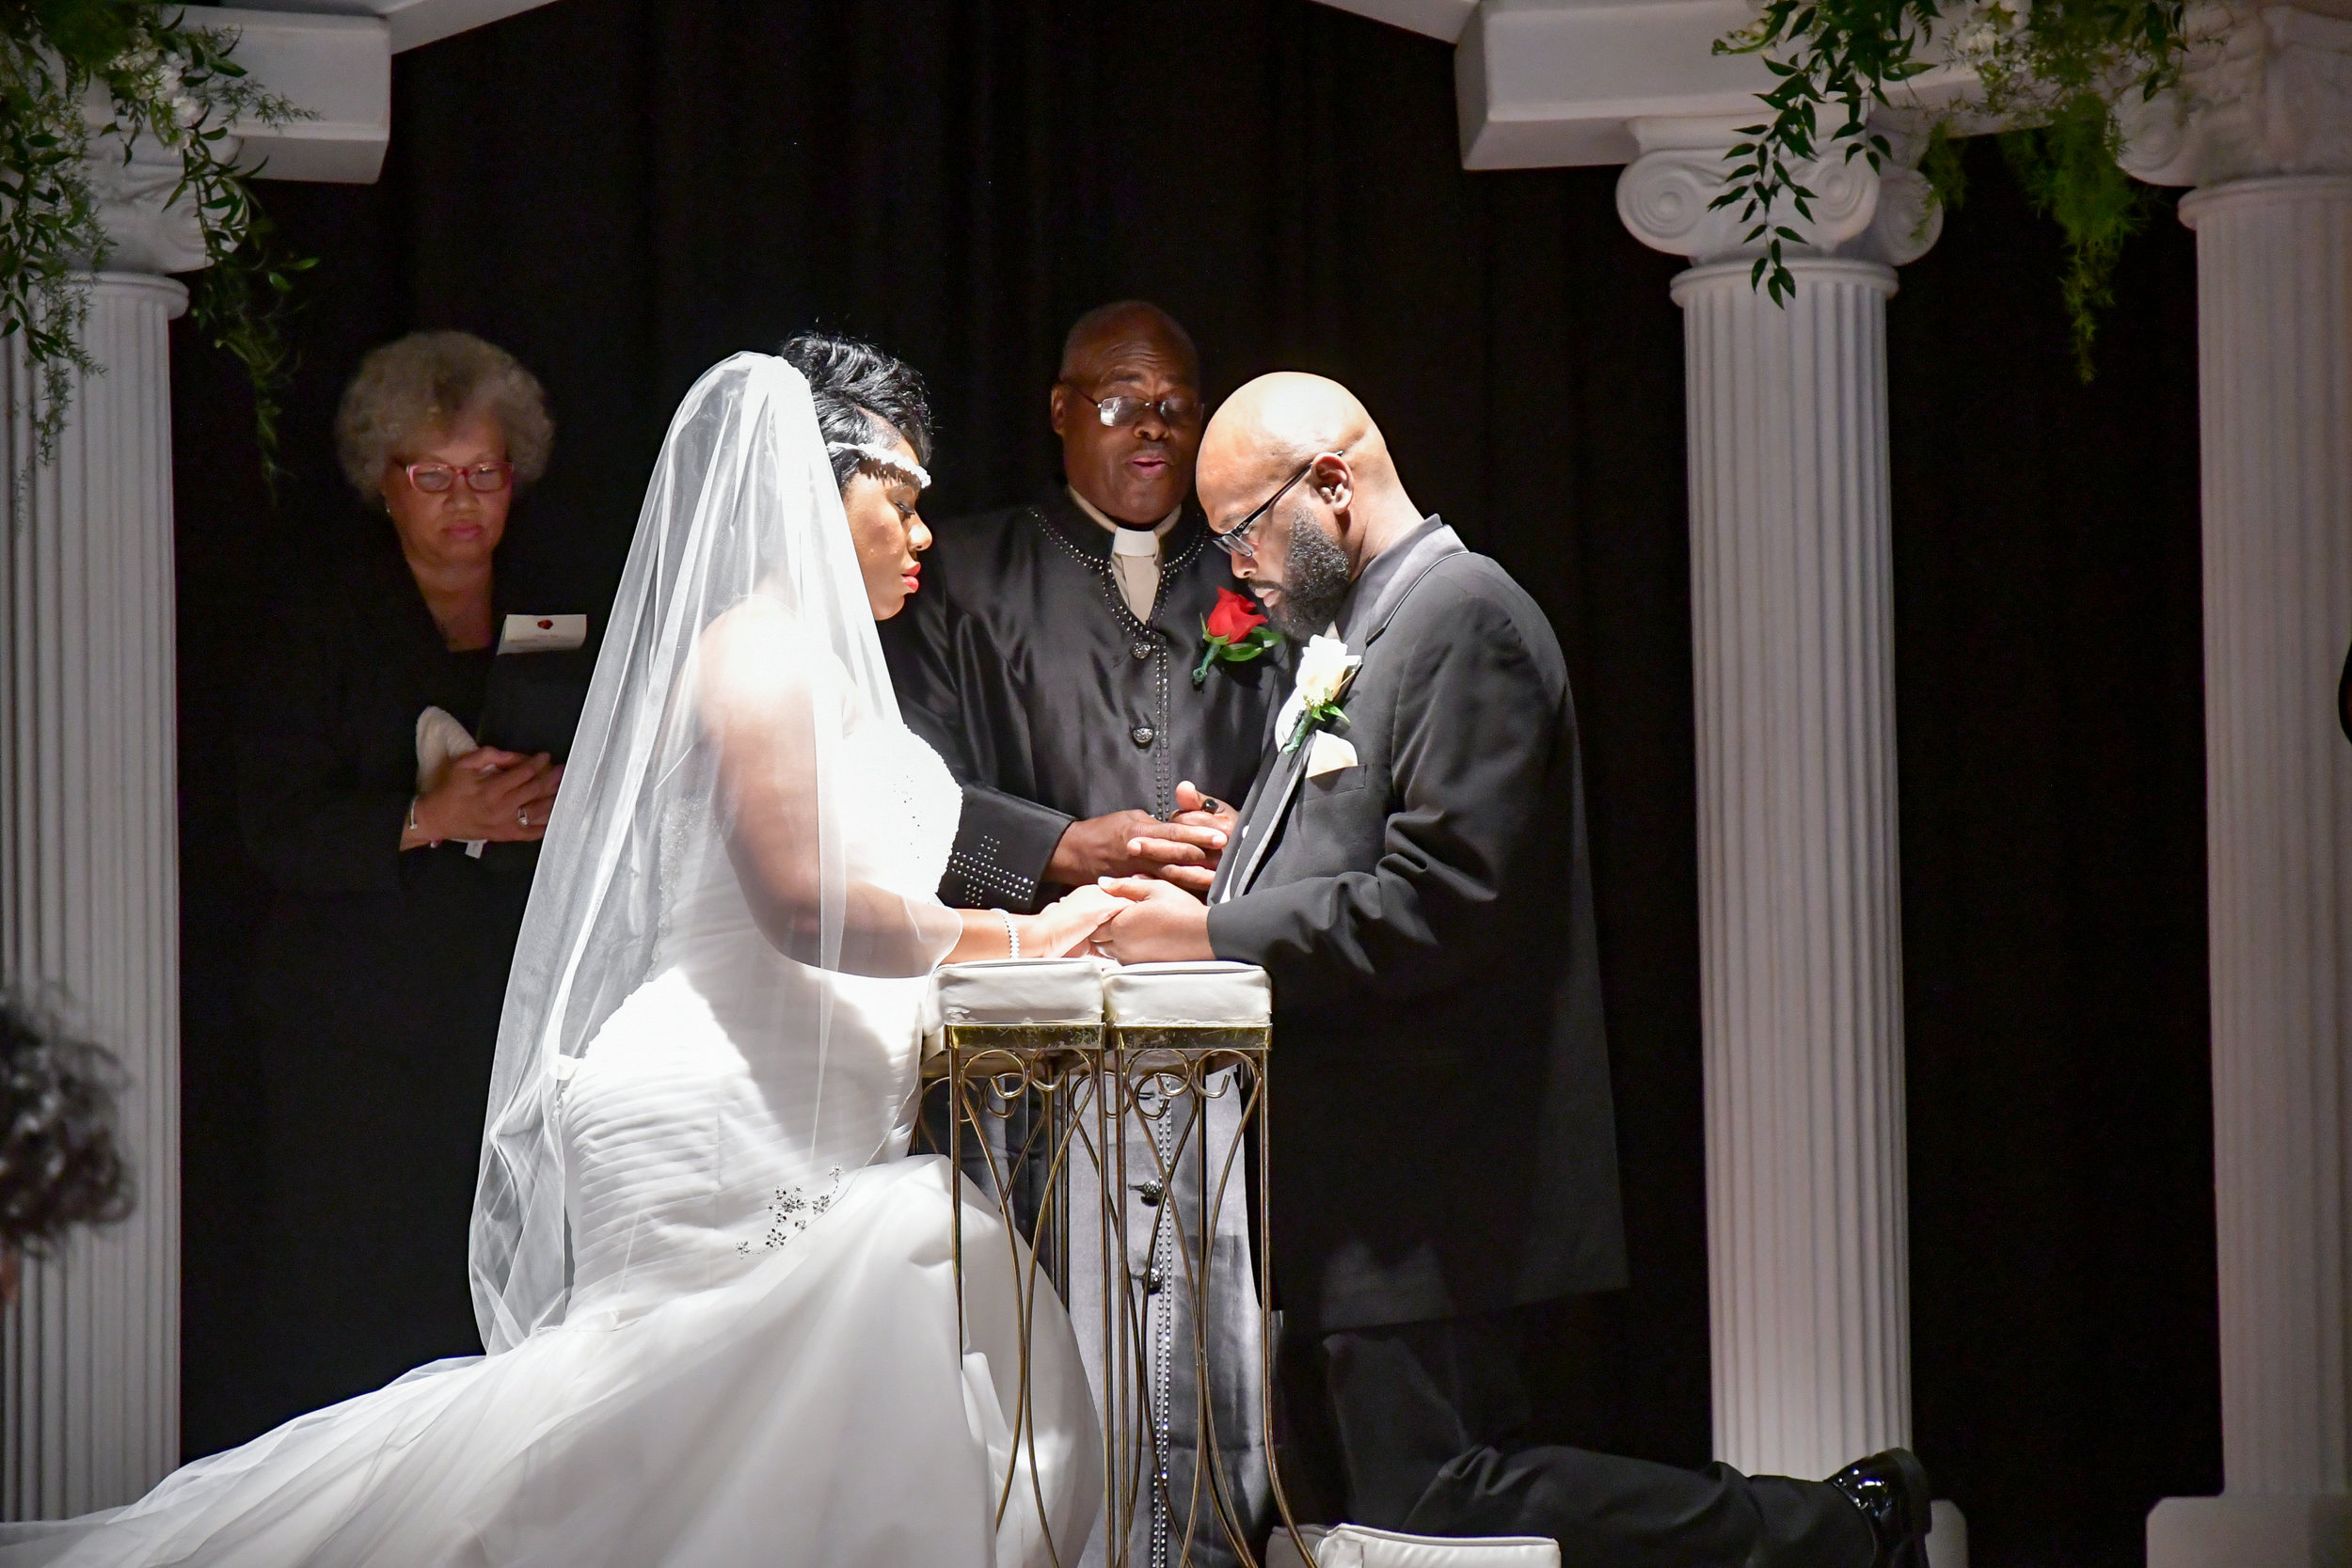 - Kneeling at the alter...